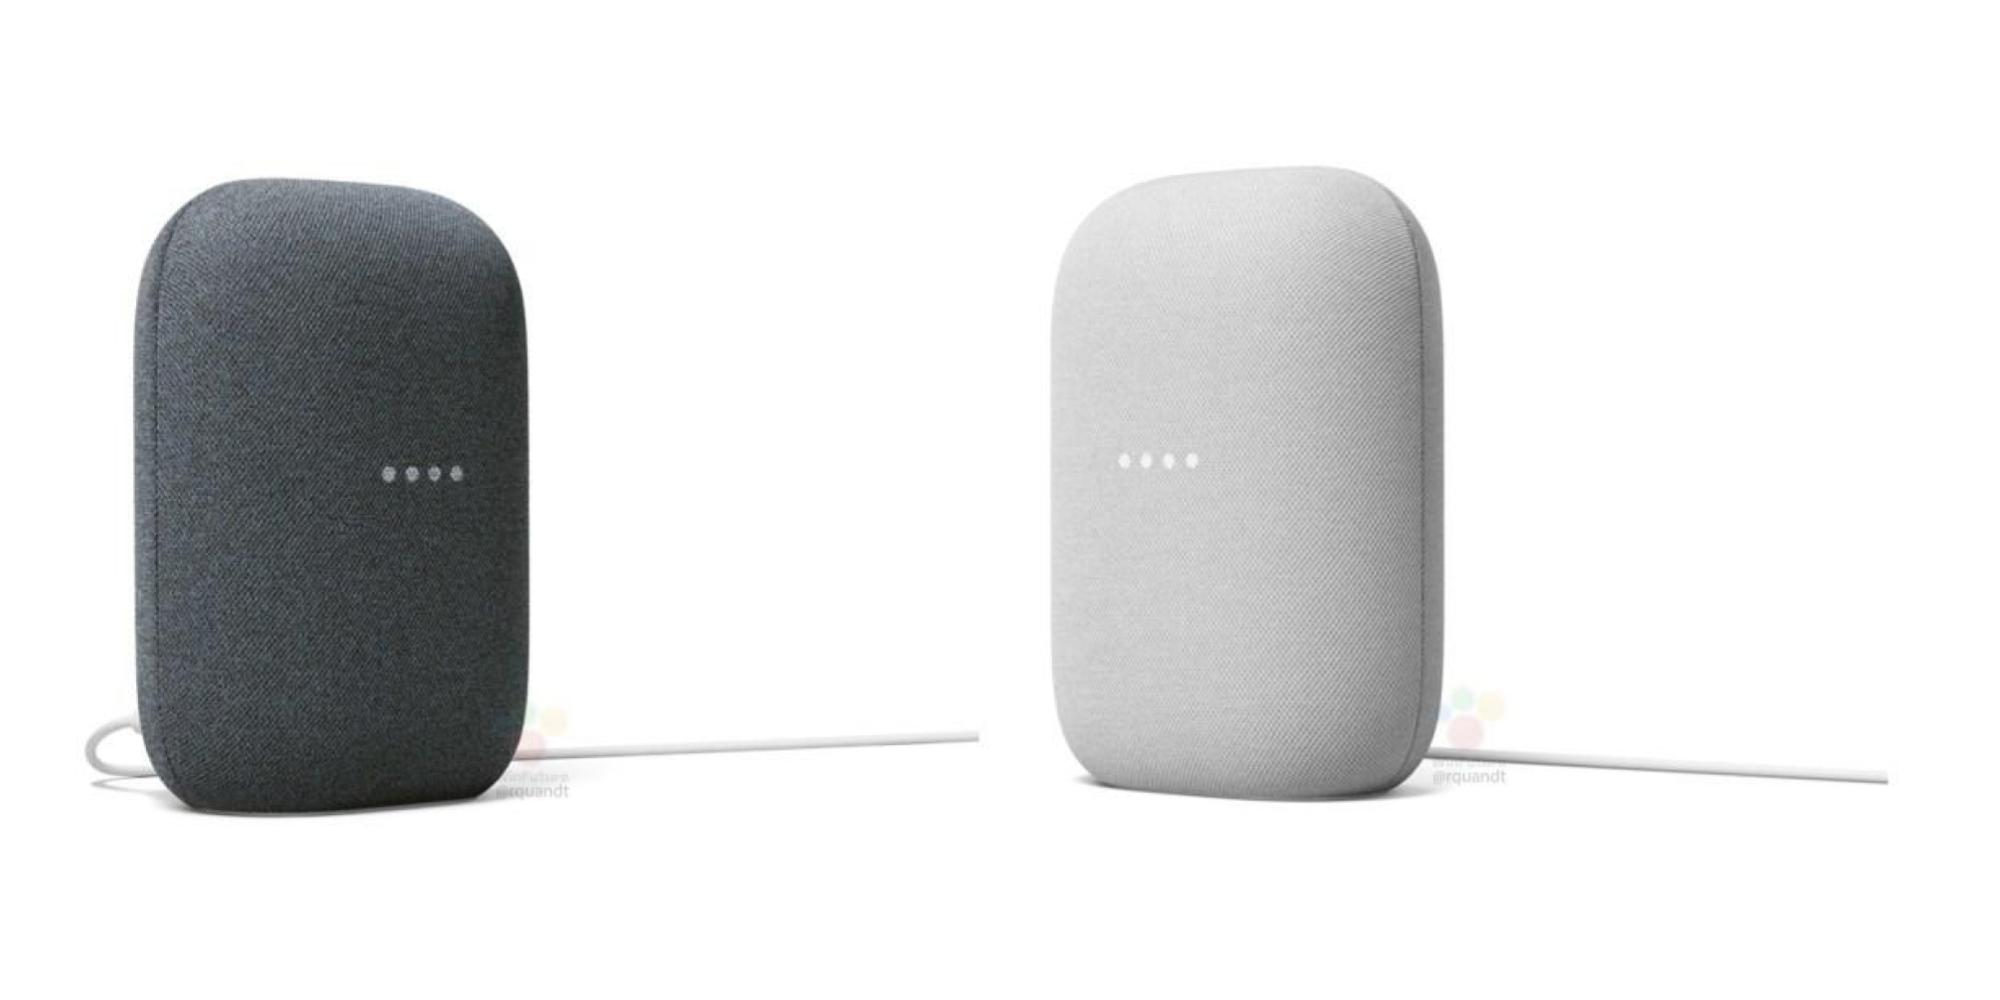 Nest Audio product images leak in 'Chalk' and 'Charcoal' [Gallery] - 9to5Google